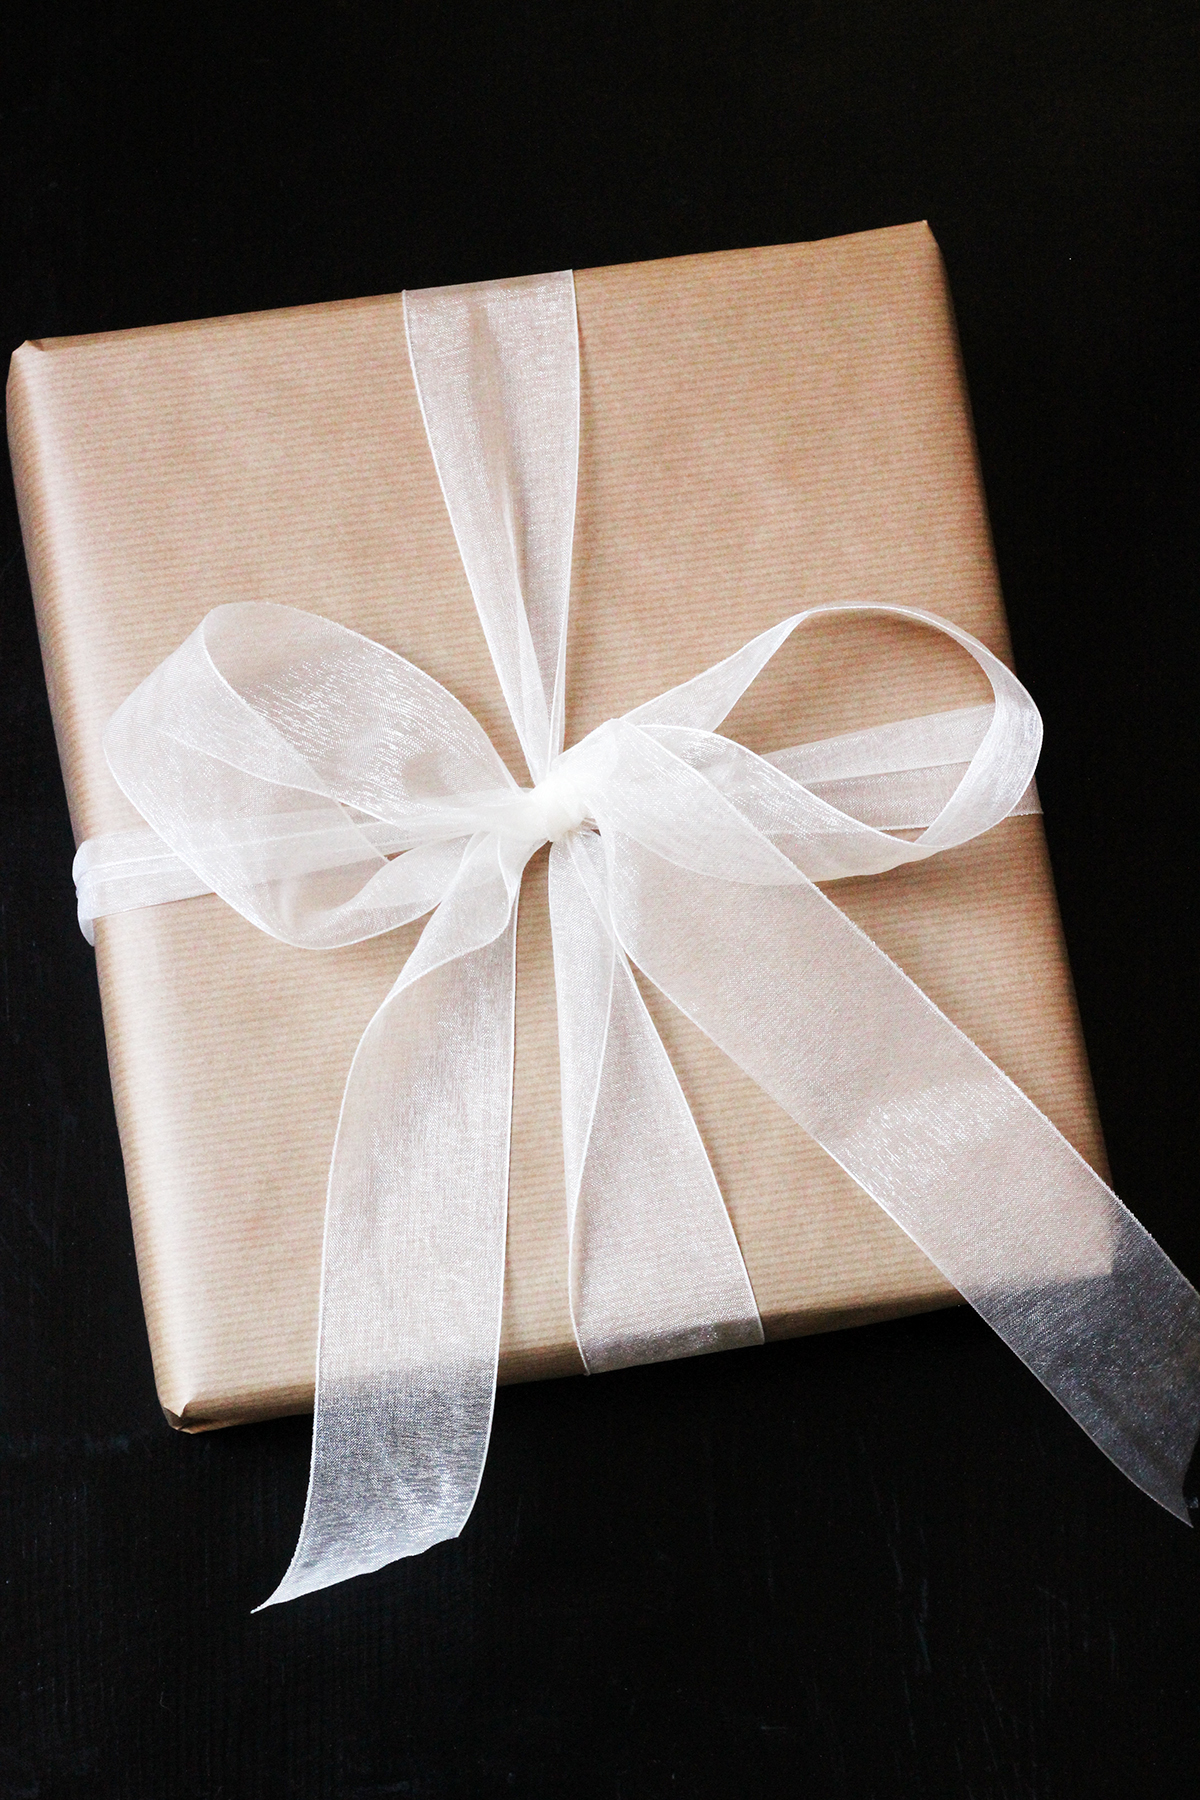 gift wrapped in brown paper and white filmy bow